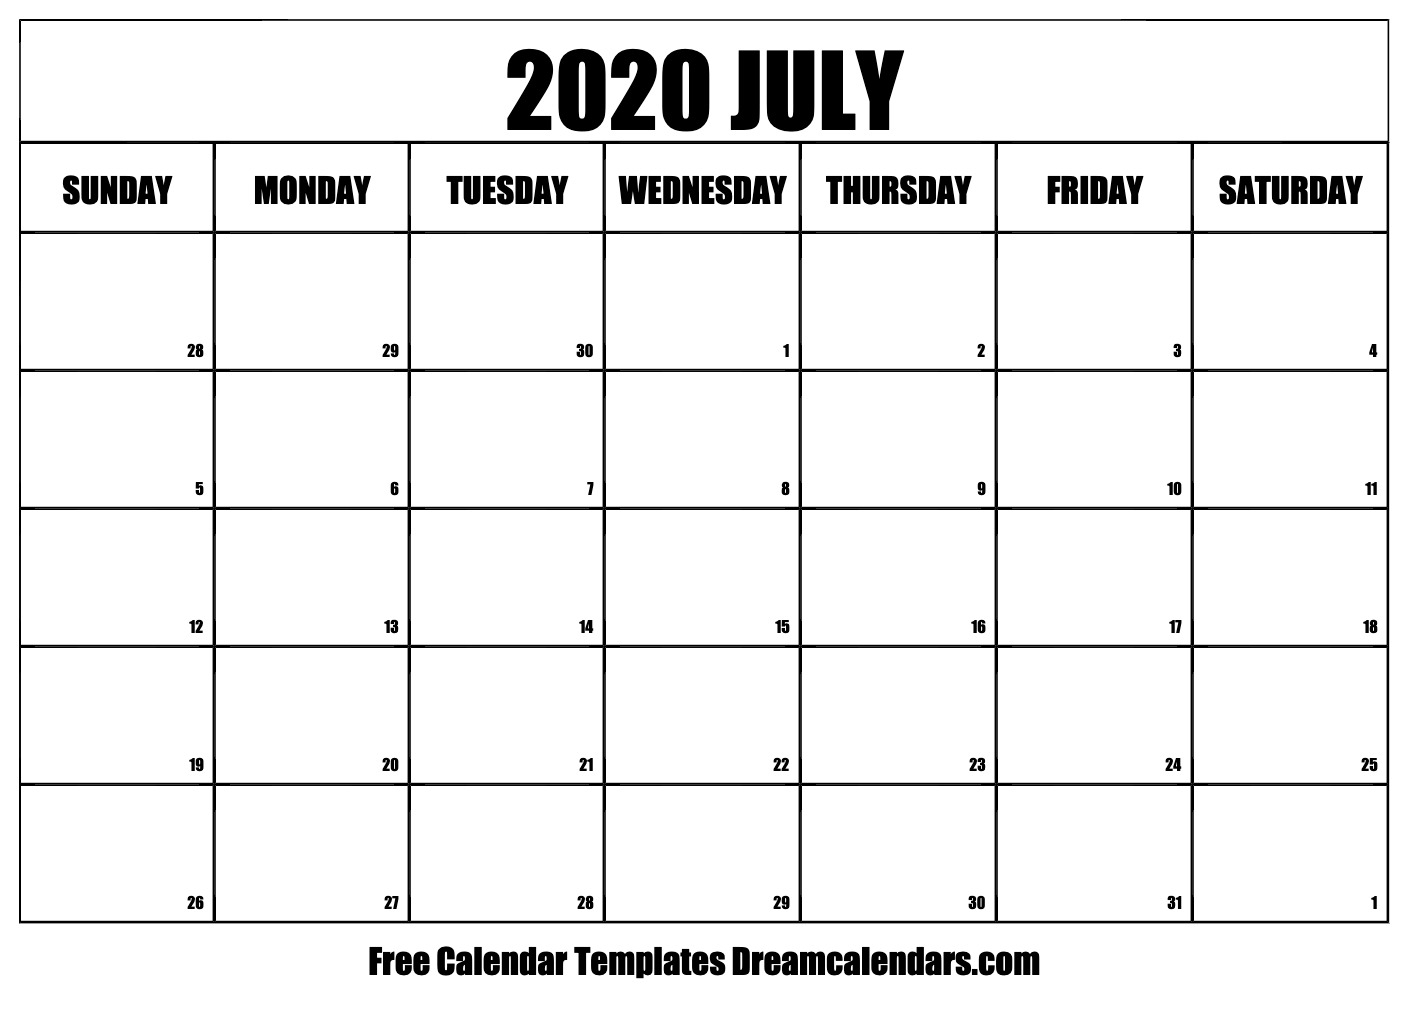 Printable July 2020 Calendar within Print Free 2020 Calendars Without Downloading